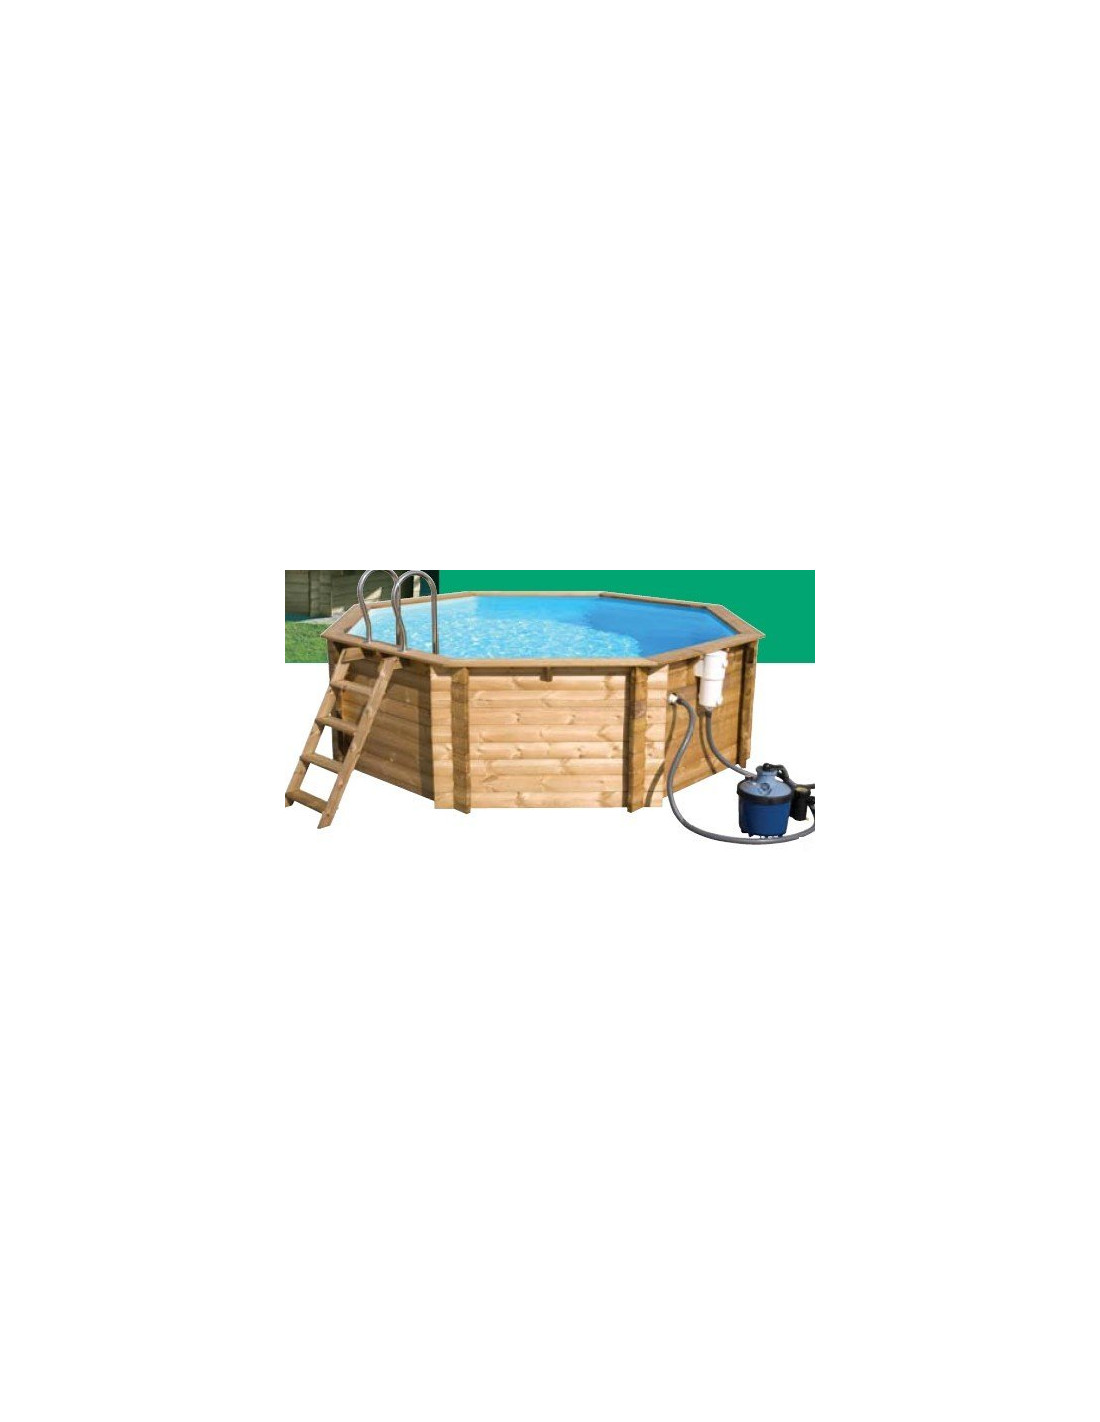 Piscine en bois tropic x m for Piscine hors sol 360 x 120